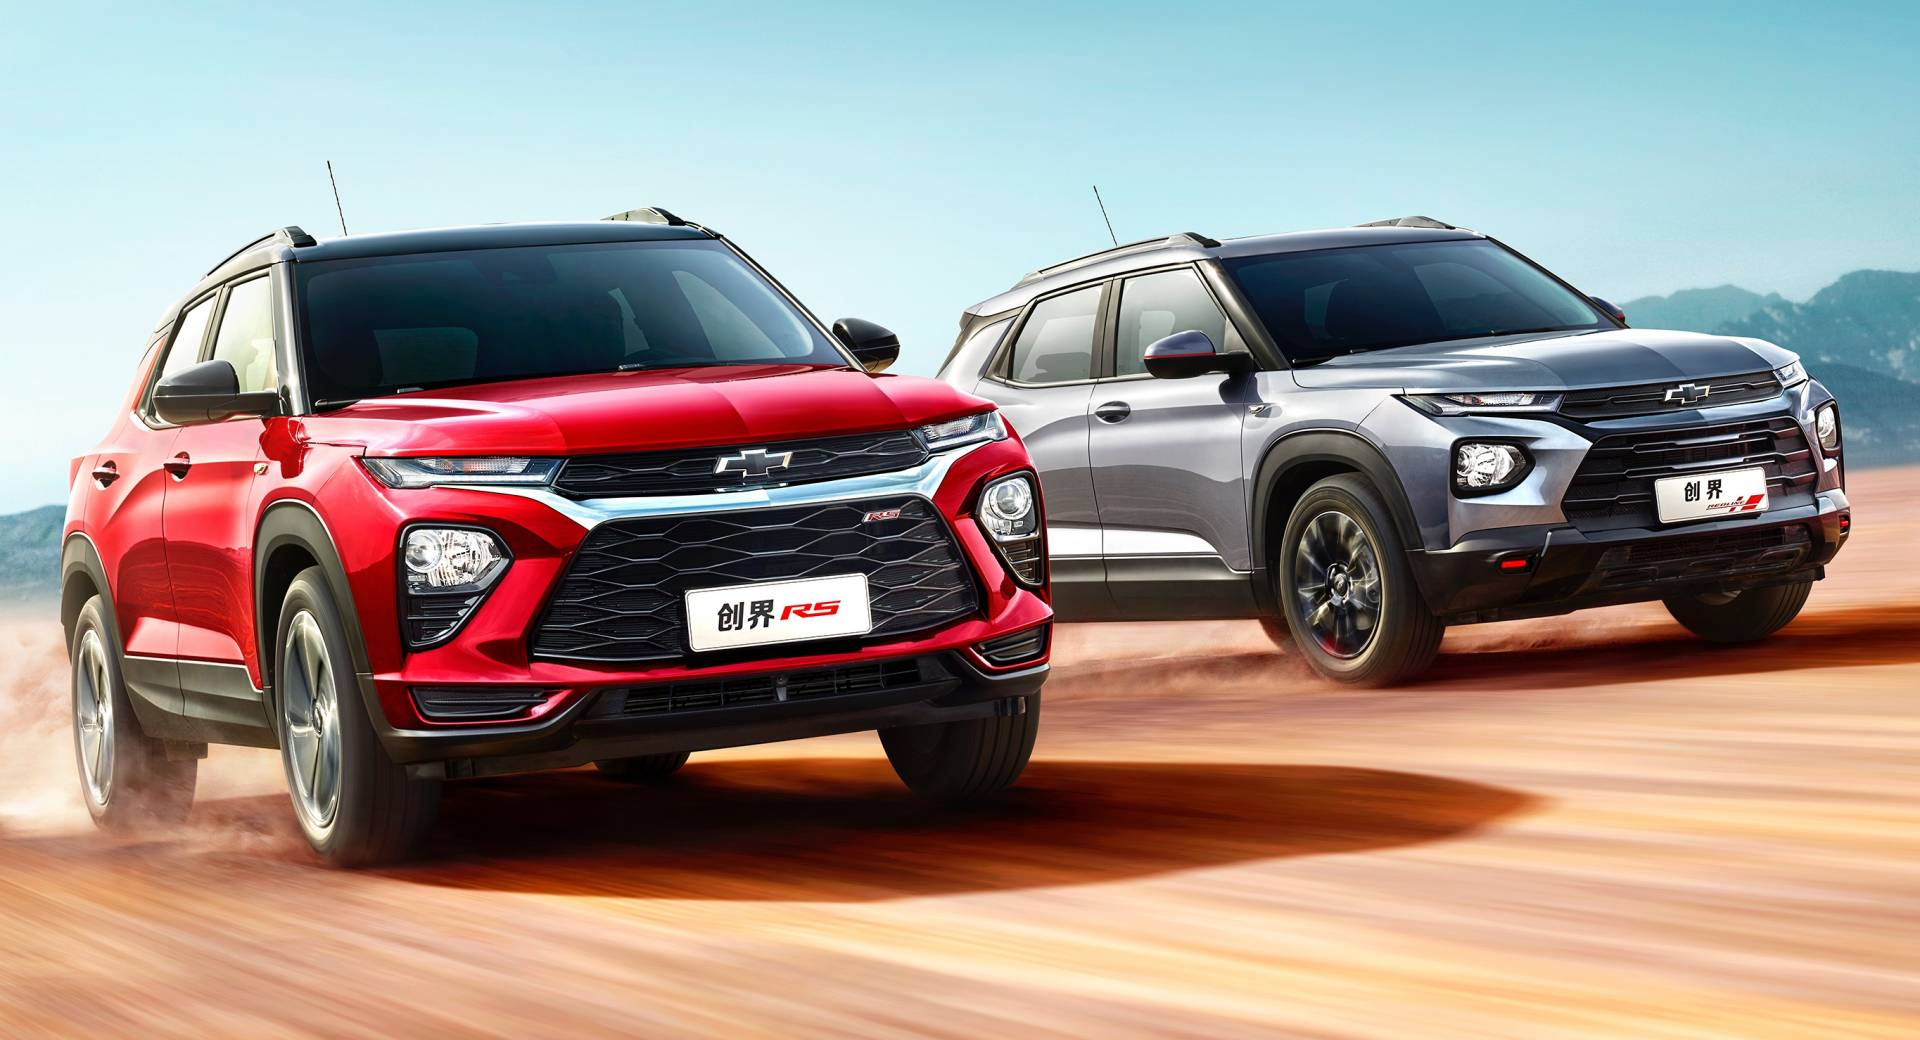 China's 2020 Chevy Trailblazer Launched With 162 HP 1.3L ...